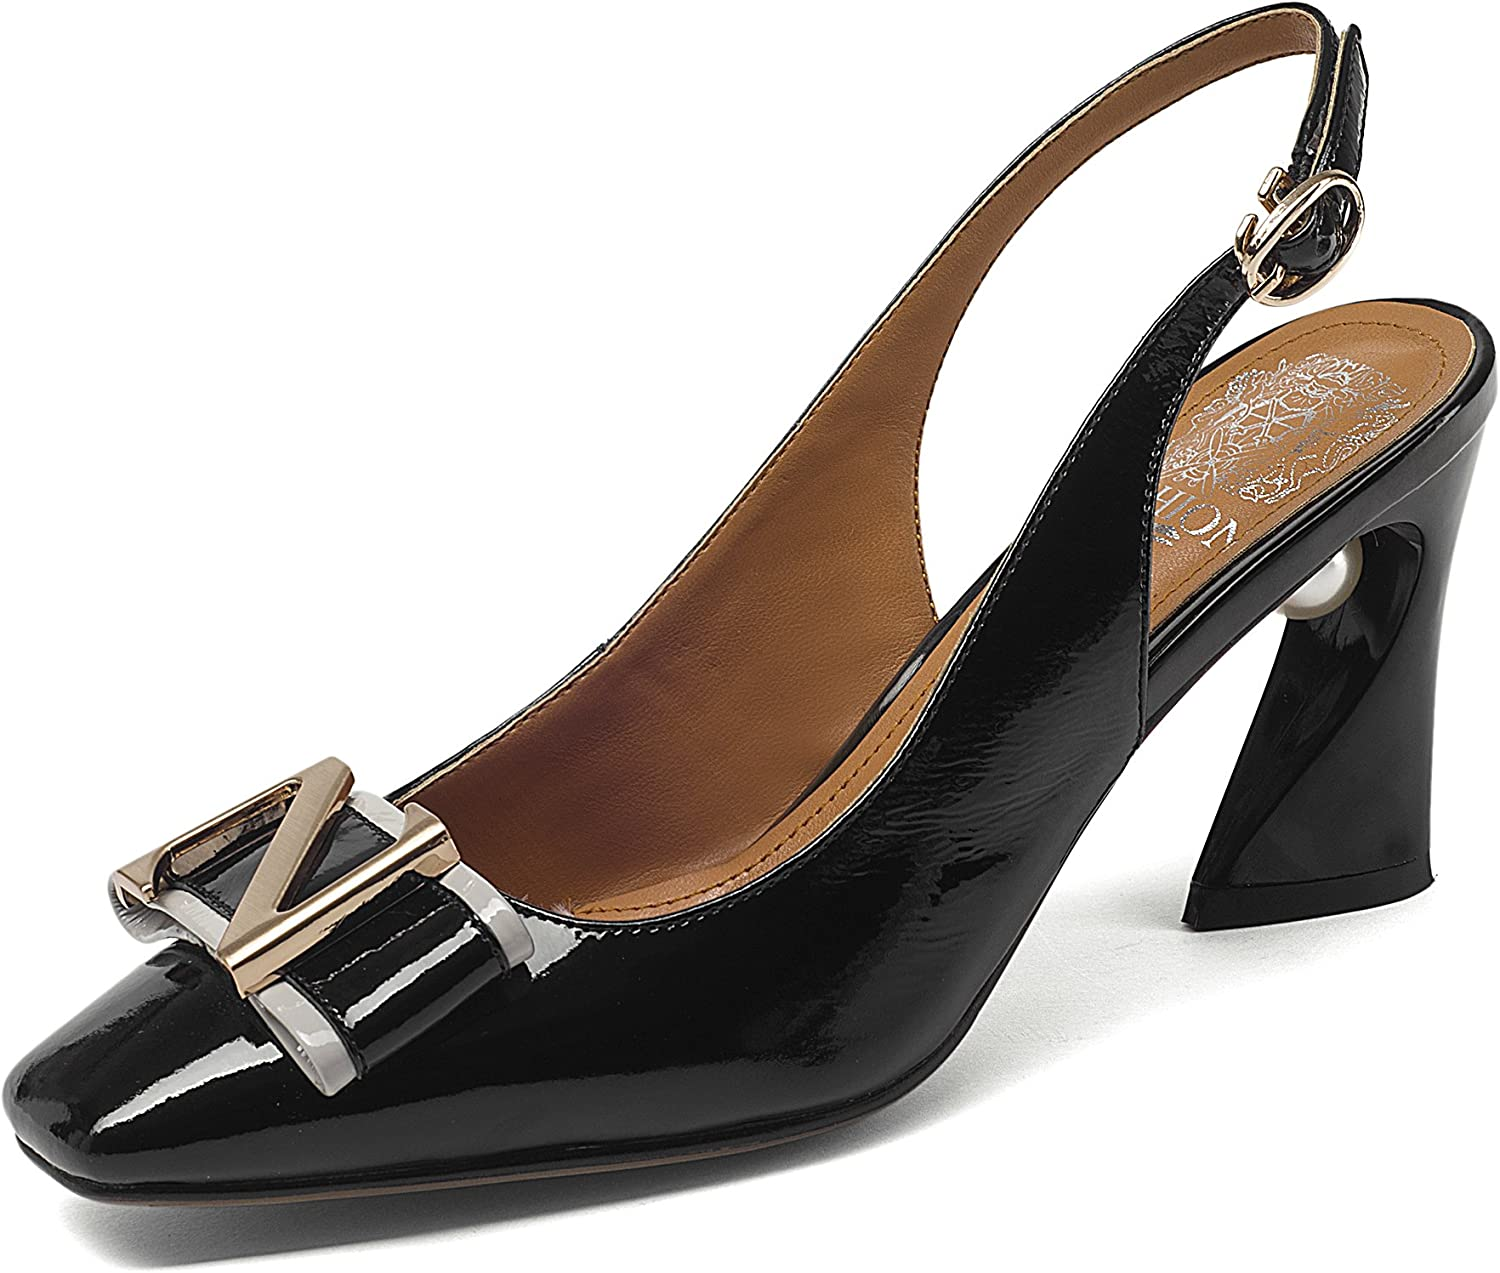 Nine Seven Women's High Chunky Heels, Square Toe Comfort Handmade Slingback Pumps with Pearl and Metallic Detail